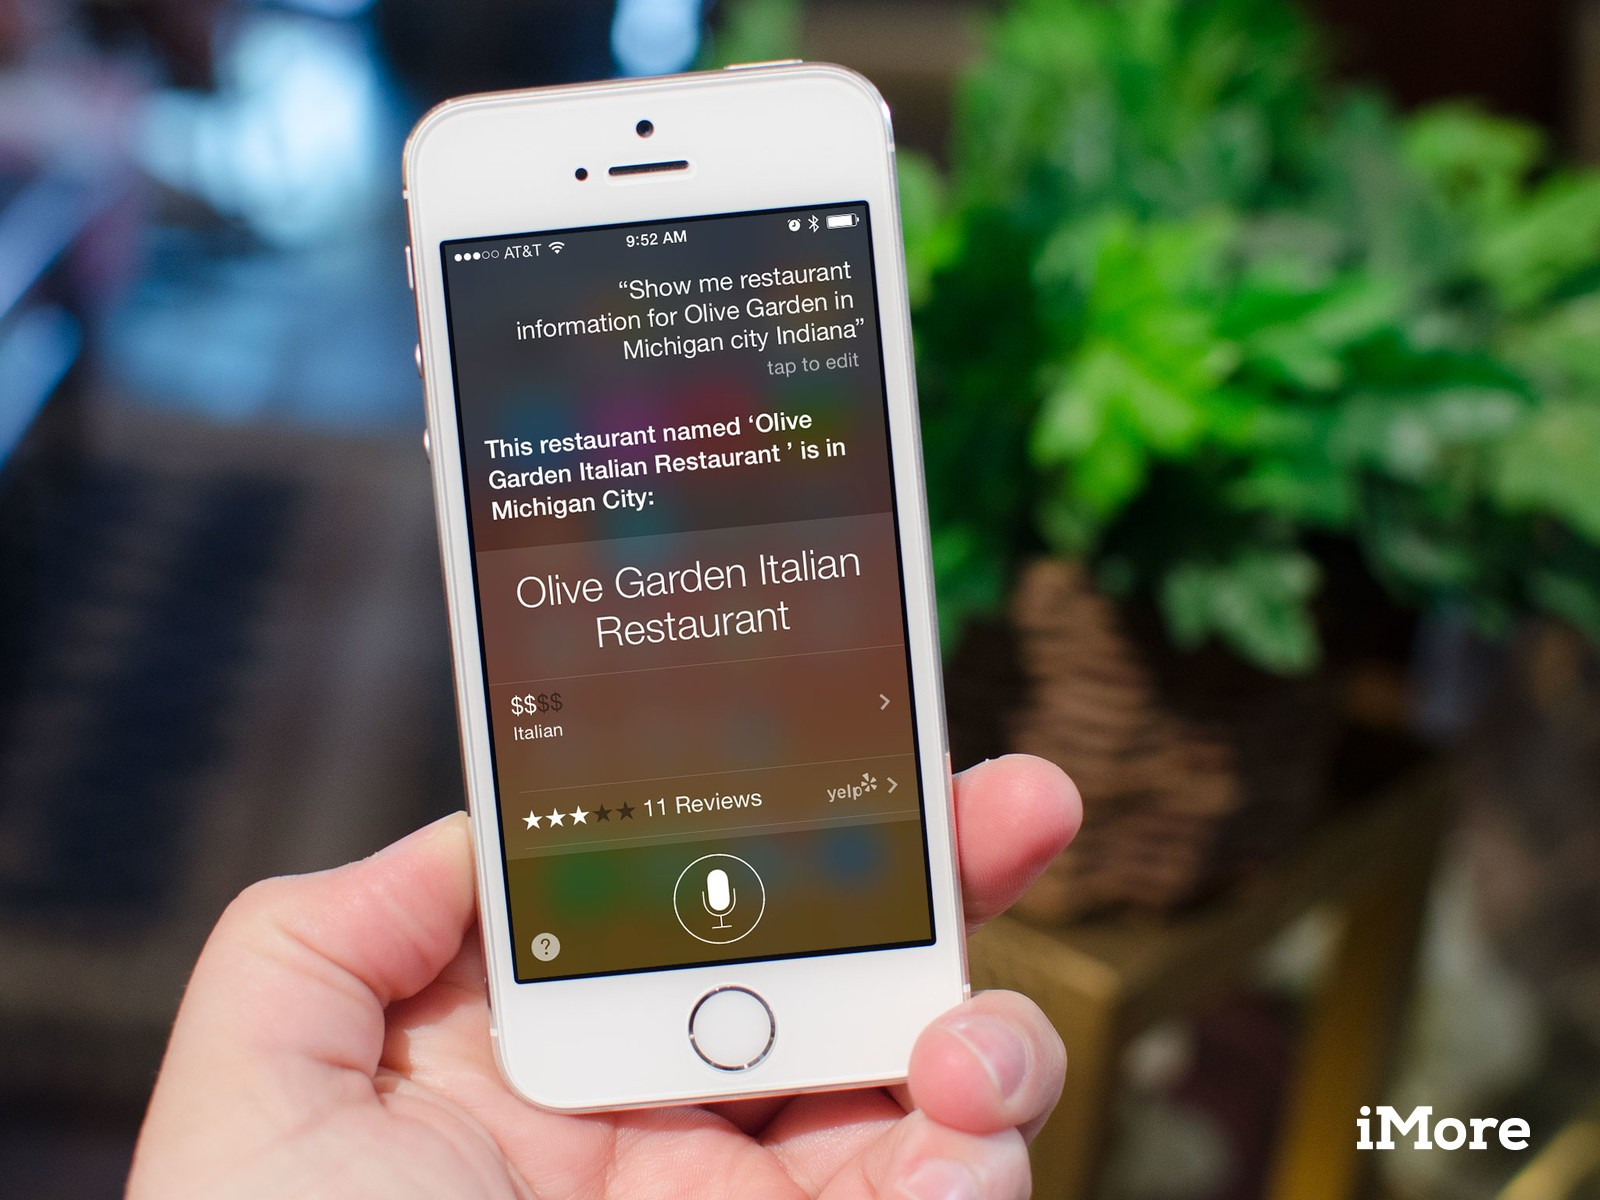 How to get pricing, hours, and general restaurant information with Siri